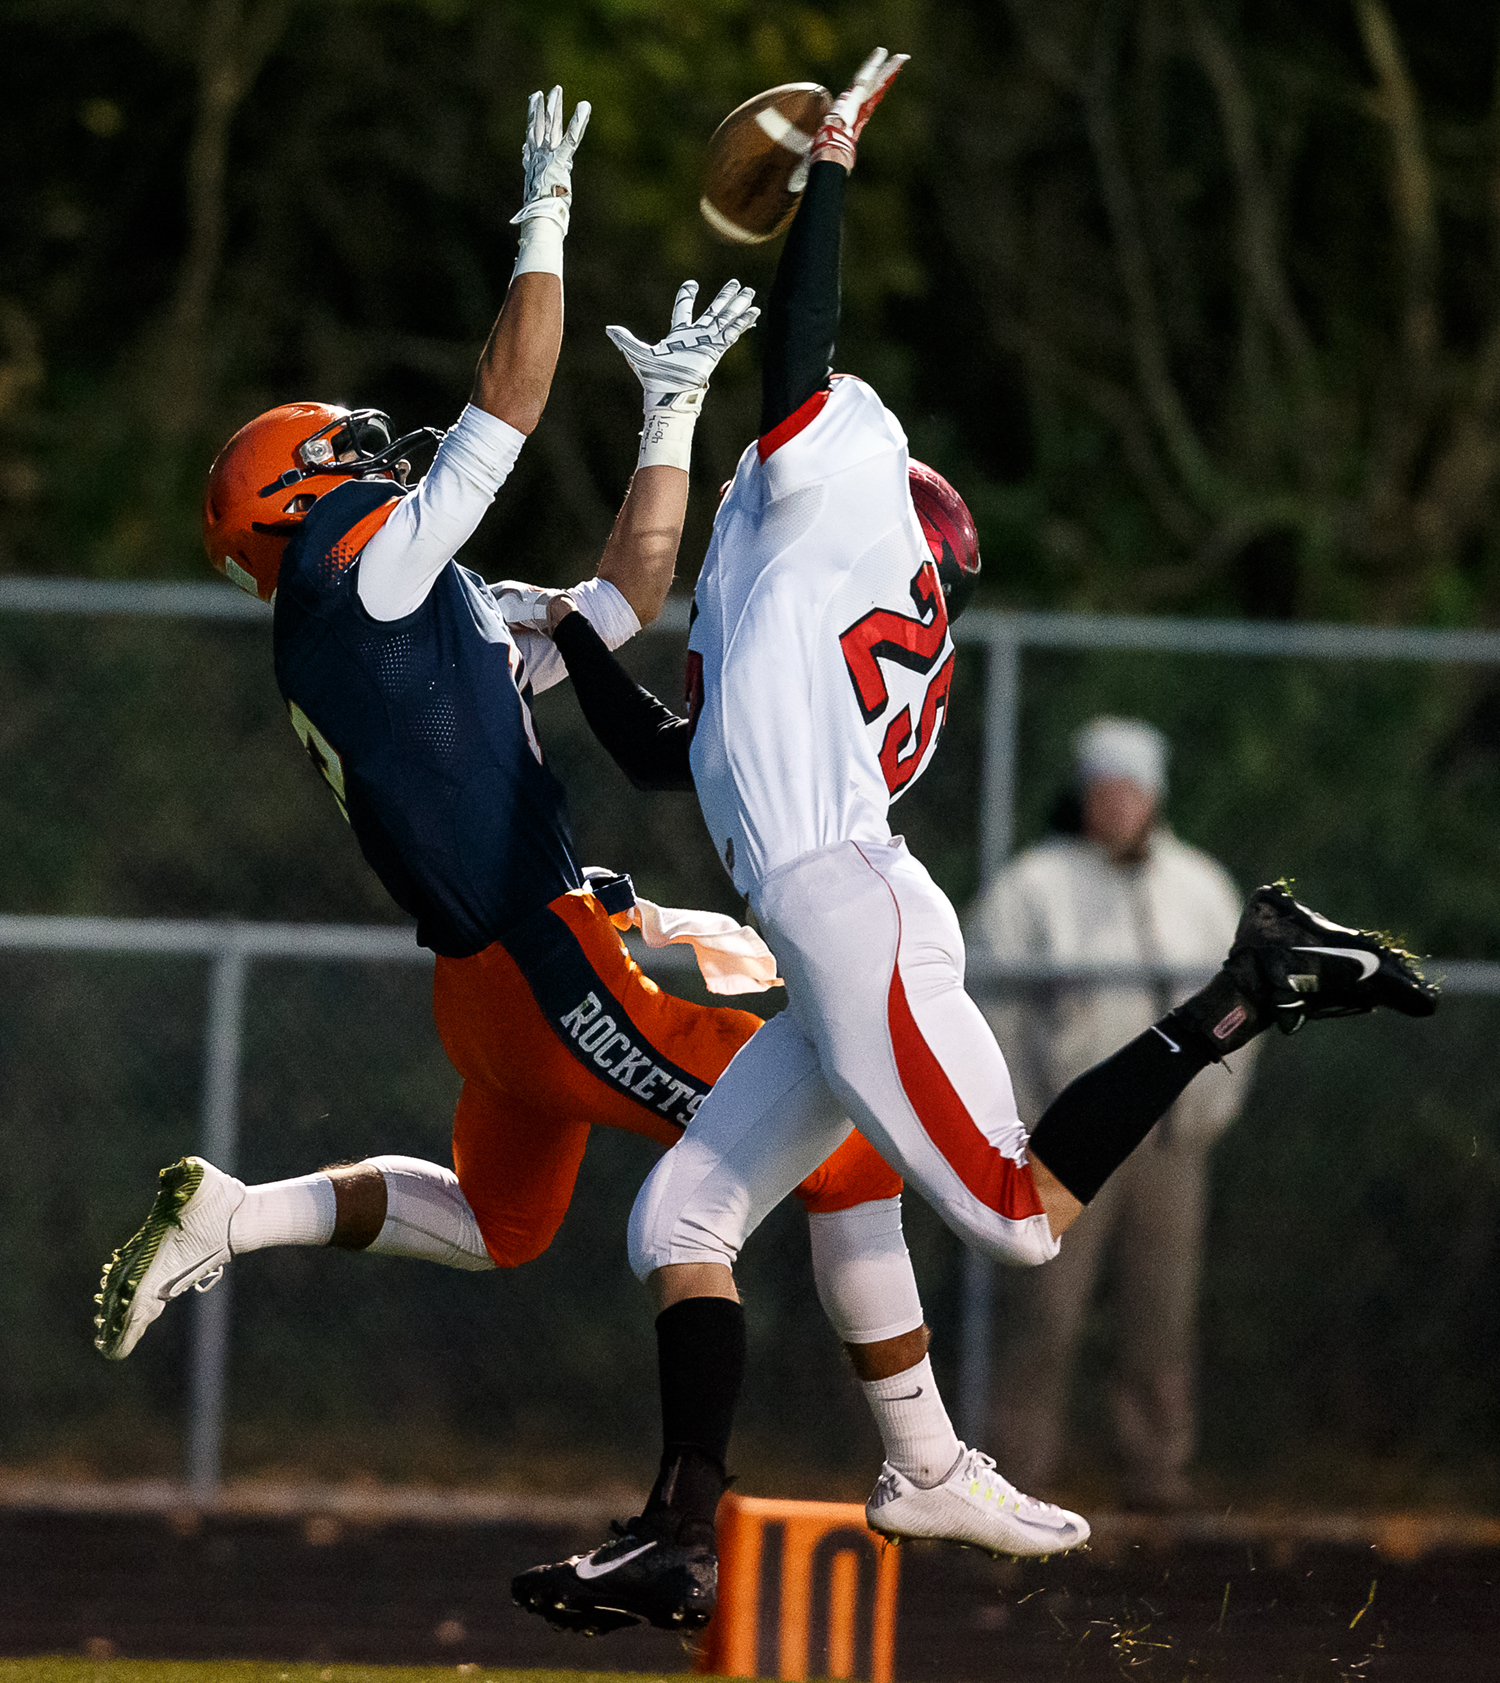 Rochester's Jeremy Bivens (15) pulls in a 28-yard pass over Mt. Zion's Josh Carnahan (25) at the one yard line to set up a touchdown on the next play in the first half during the first round of the Class 4A playoffs at Rocket Booster Field, Saturday, Nov. 1, 2014, in Rochester, Ill. Justin L. Fowler/The State Journal-Register